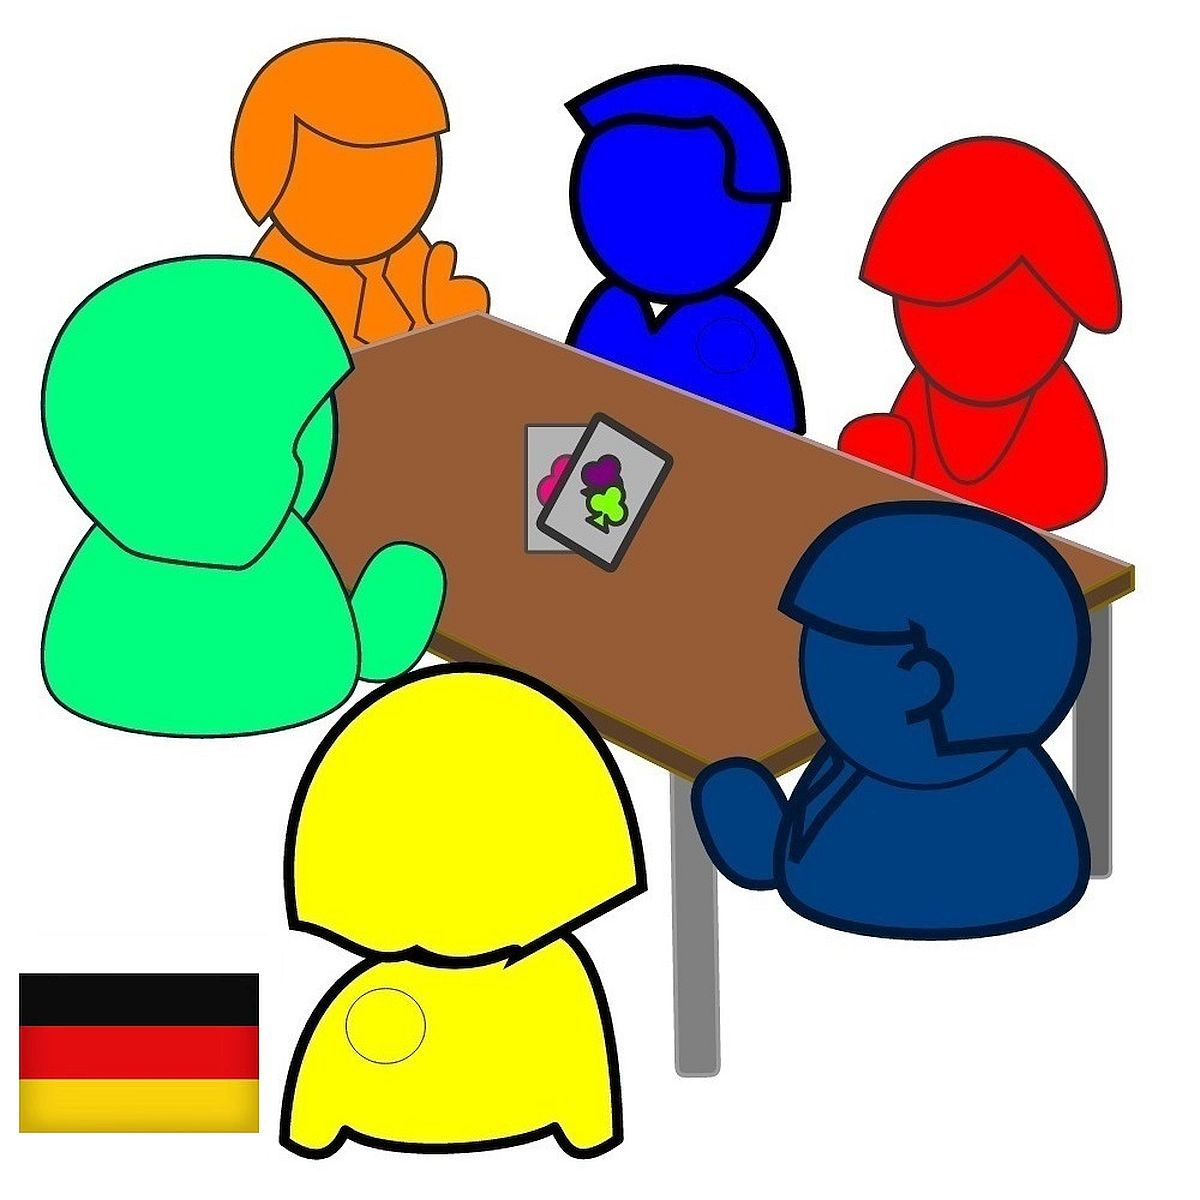 Agile Self-assessment Game in German